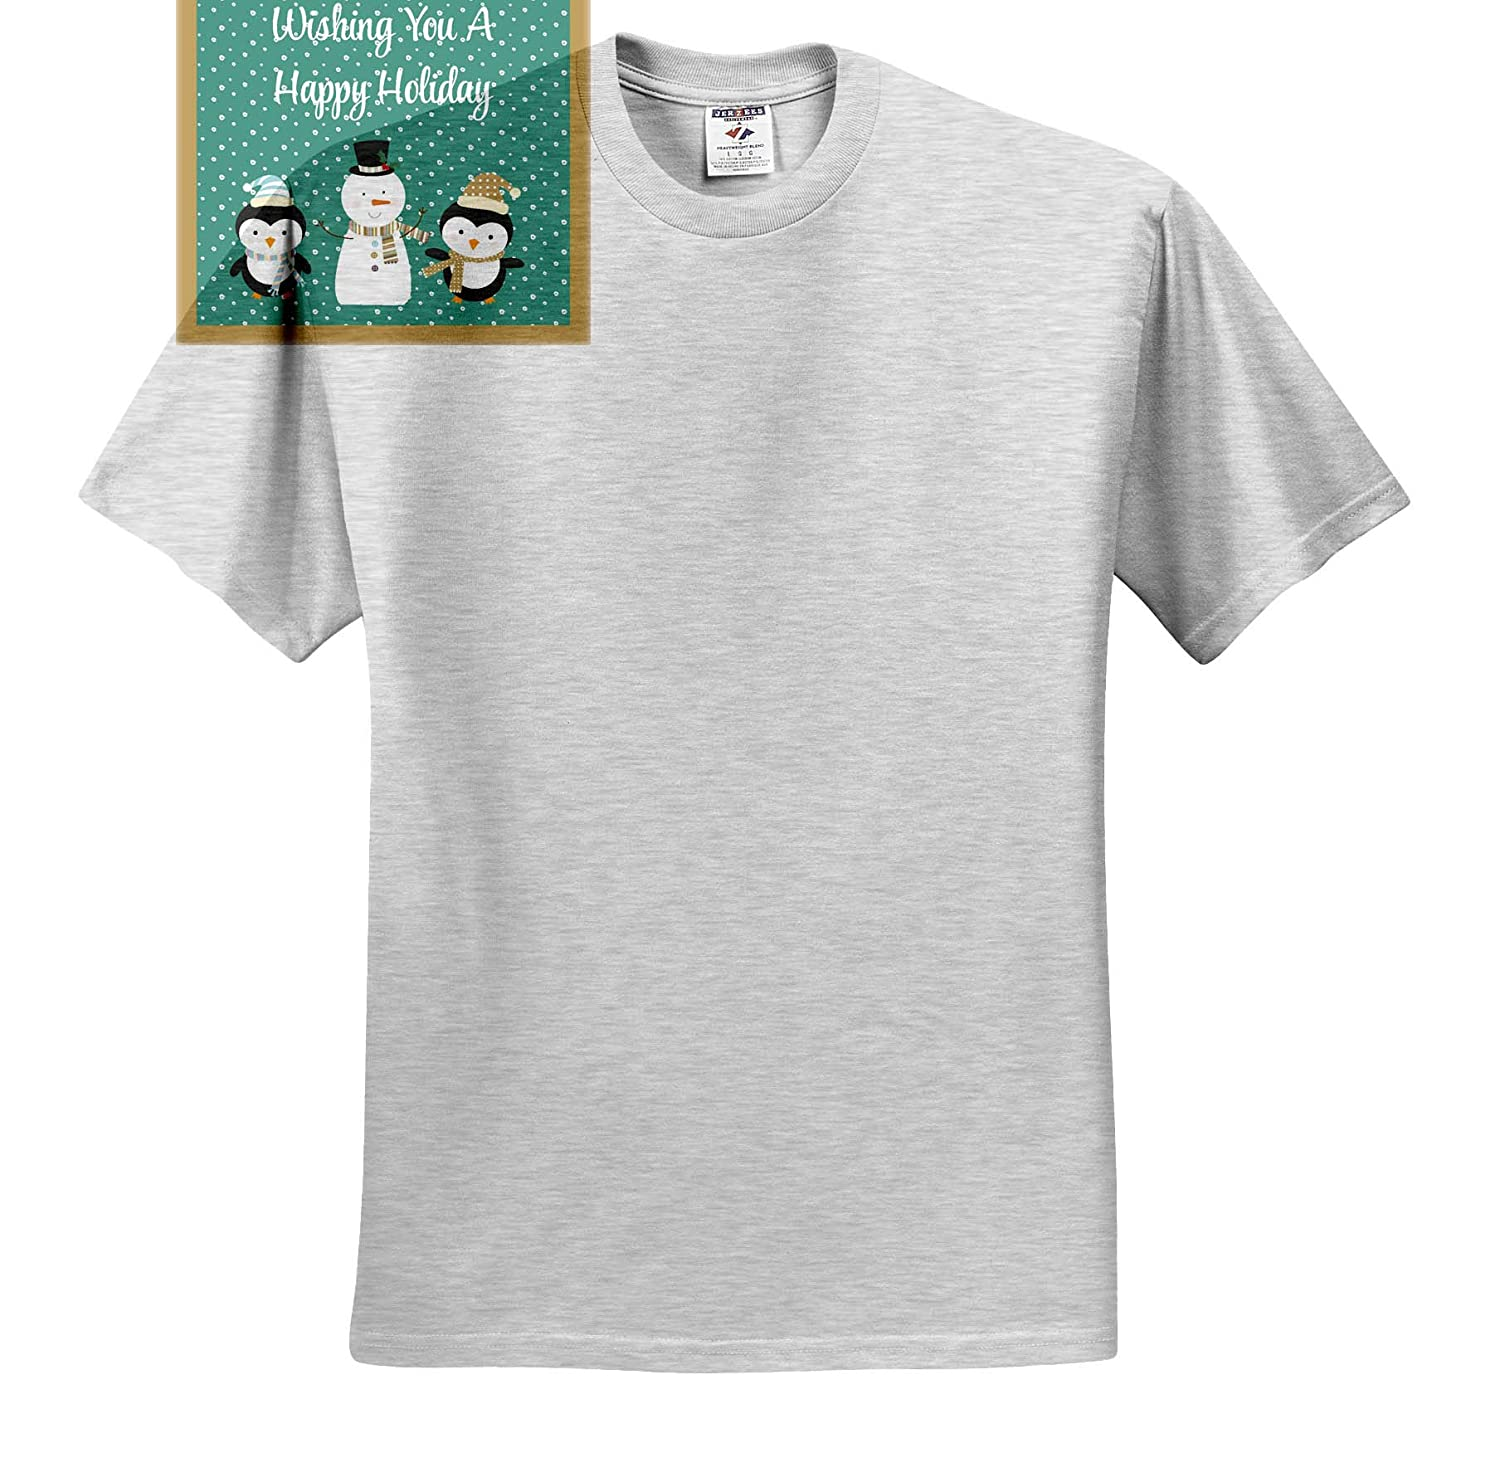 T-Shirts 3dRose TNMGraphics Christmas Happy Holidays Penguins and Snowman with Green Snowy Background